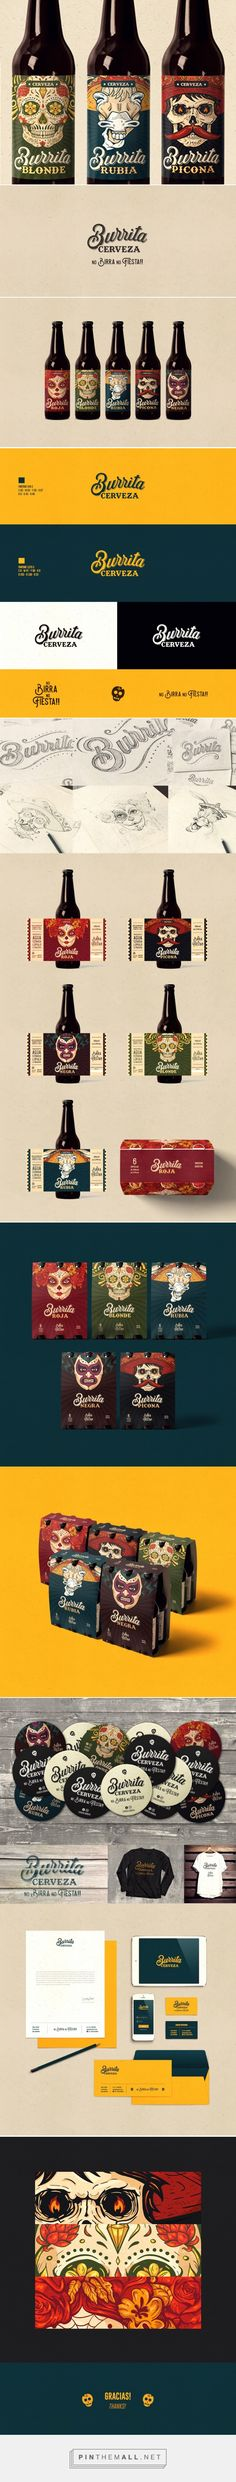 Cerveza Burrita packaging design by Konkon - http://www.packagingoftheworld.com/2017/12/cerveza-burrita.html